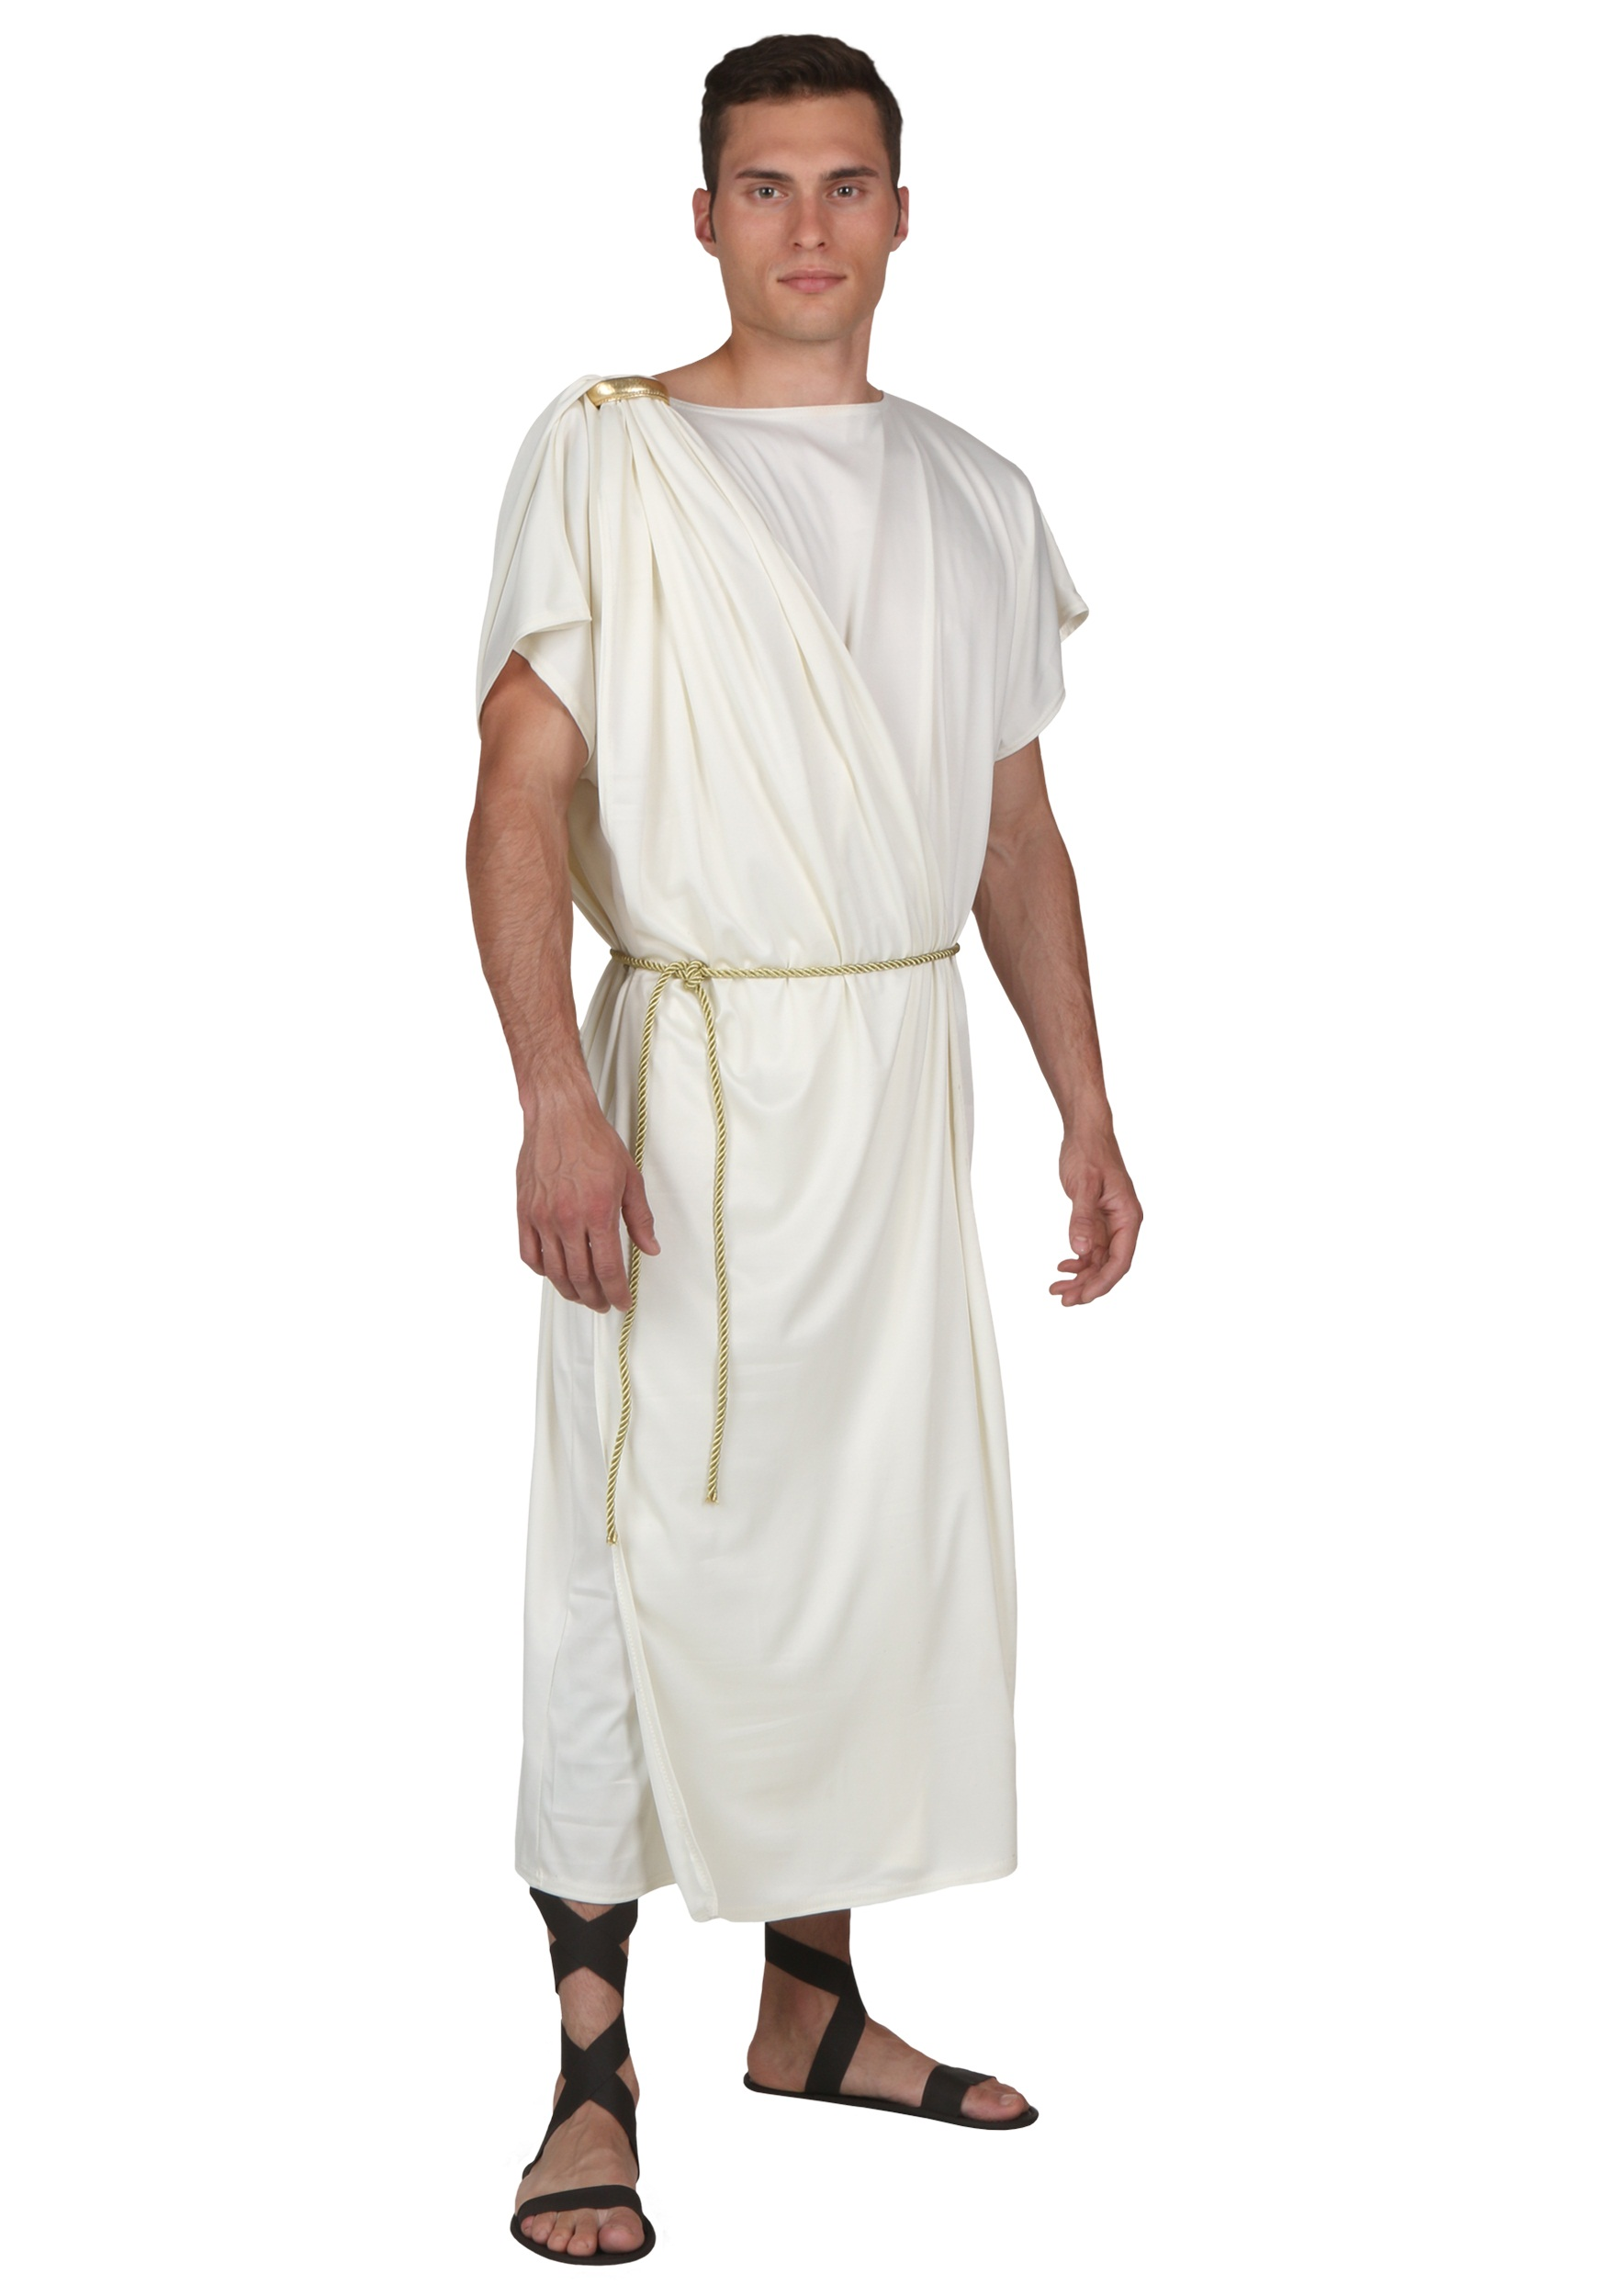 toga halloween costume for men